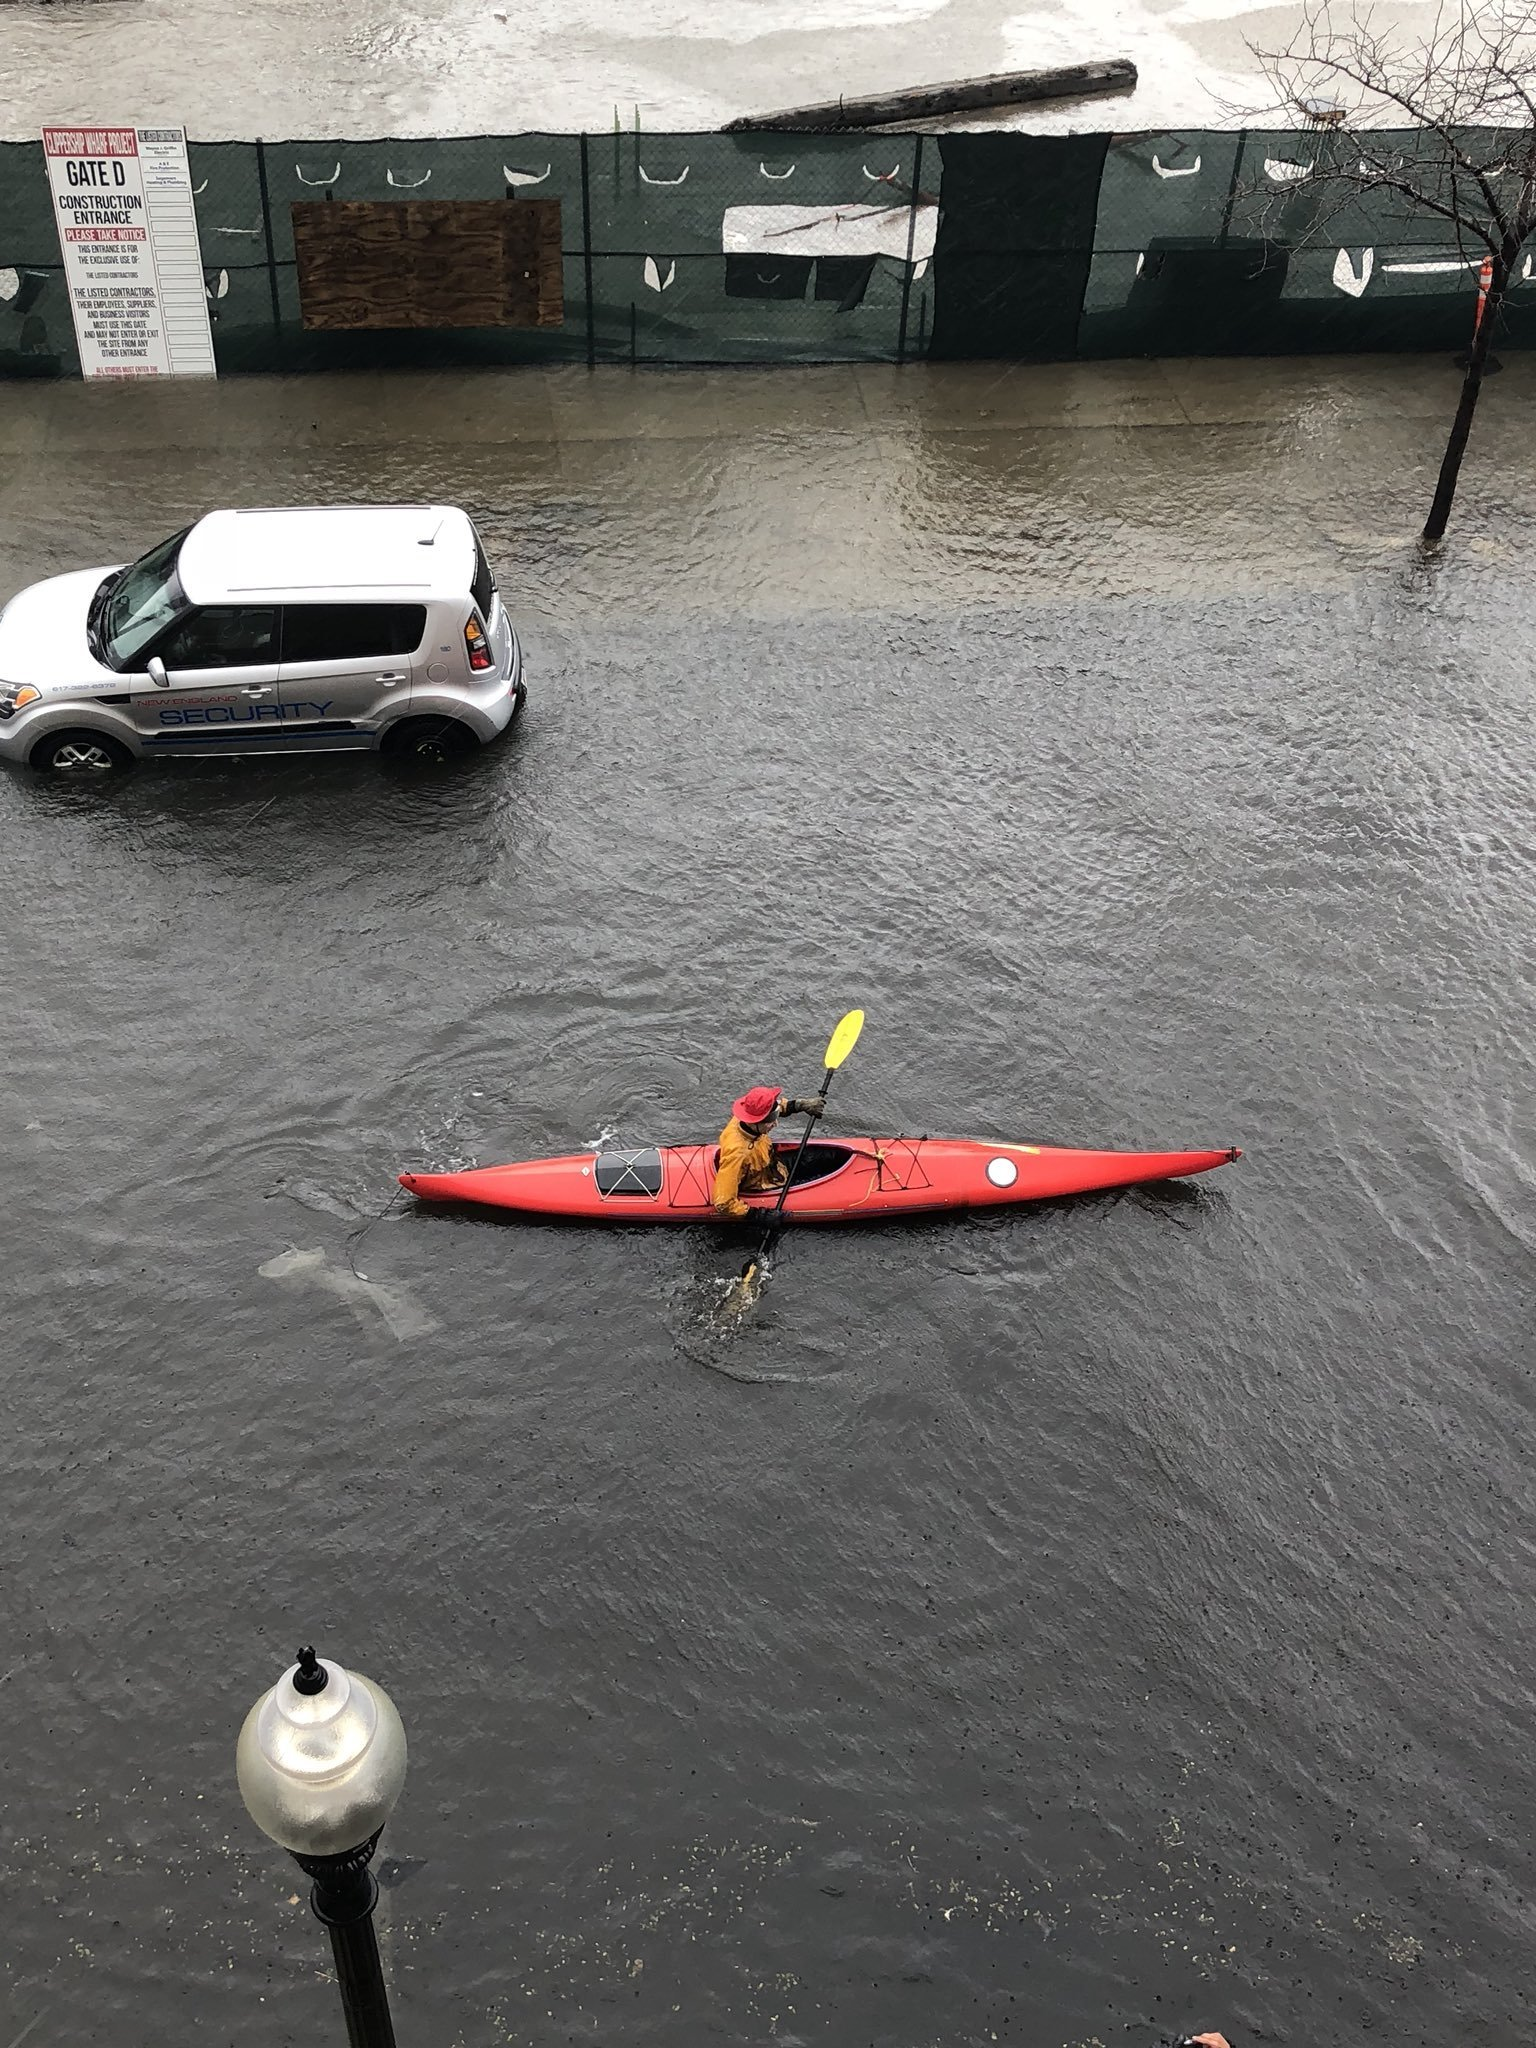 Seen here is flooding on March 2, 2018 in East Boston. A kayaker is seen here paddling down this flooded street.